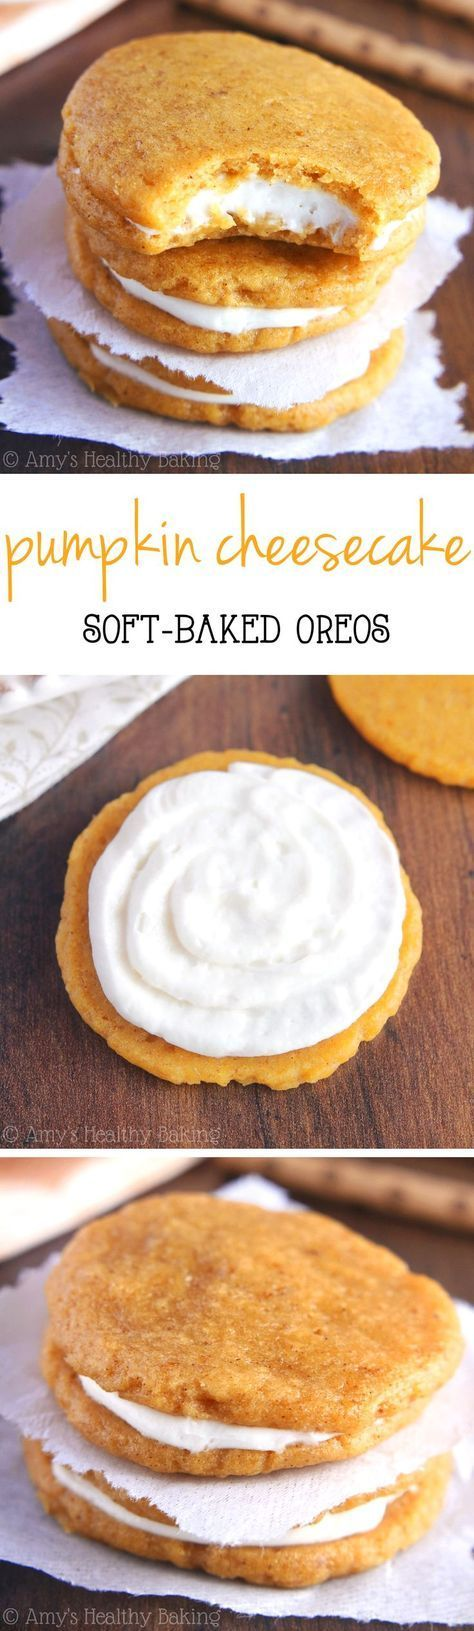 Pumpkin Cheesecake Sandwich Cookies -- homemade soft-baked Oreos with no-bake cheesecake filling! SO addictive & barely 100 calories!